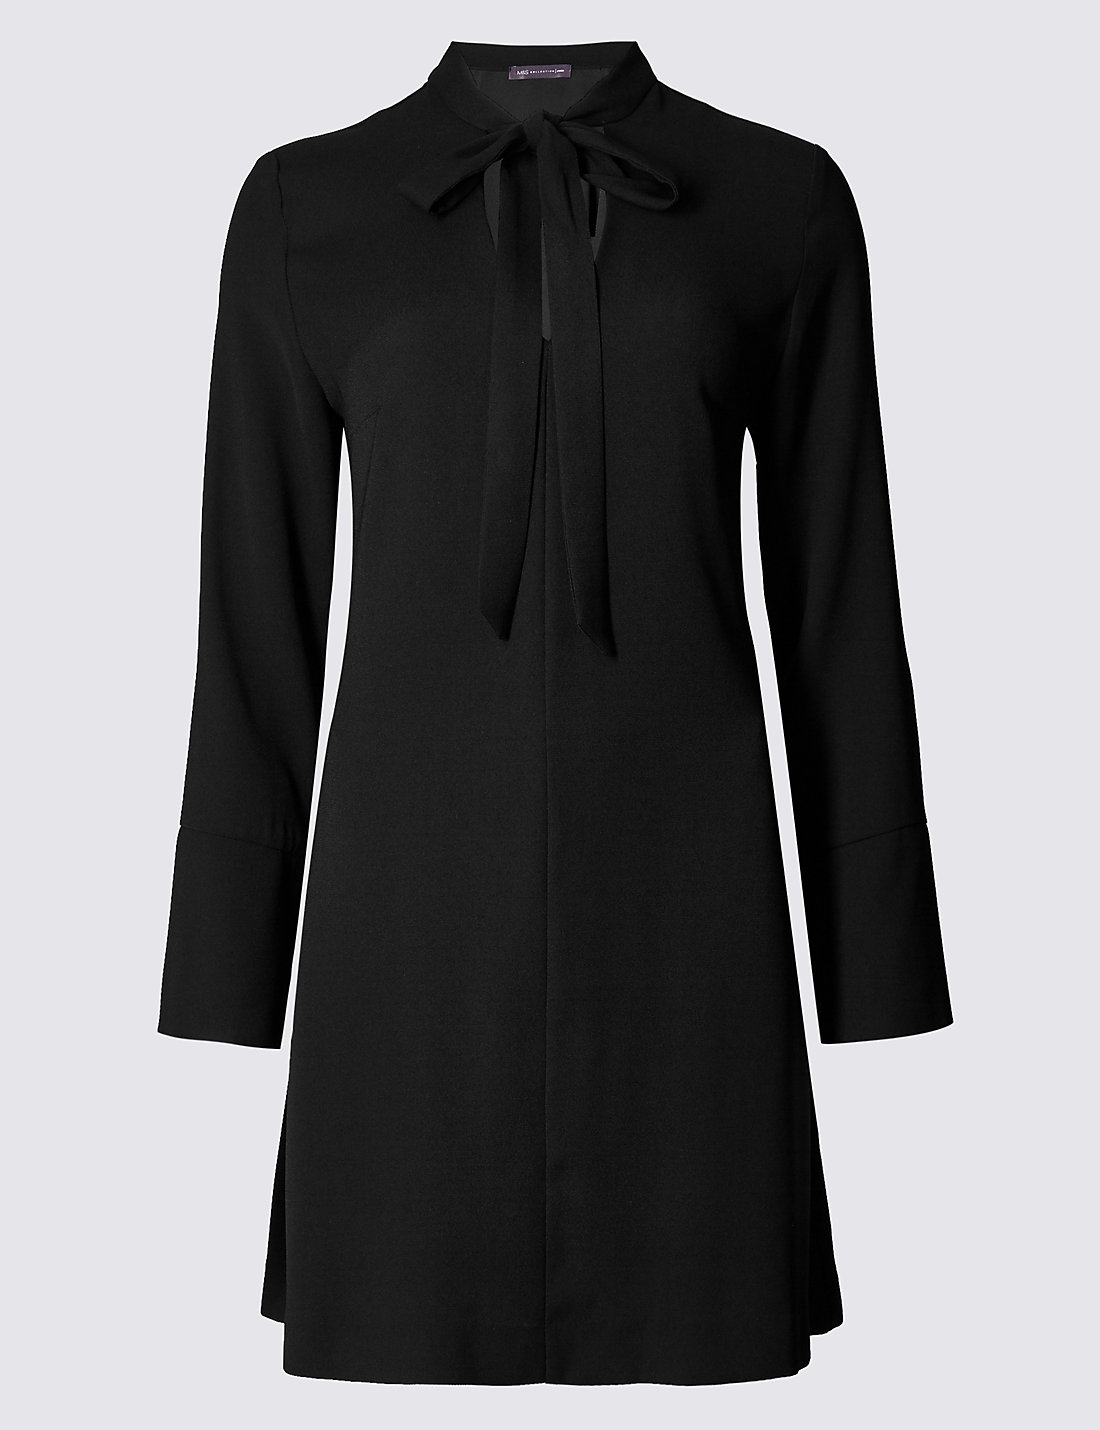 M&S COLLECTION New Long Sleeve Notch Neck Tunic Dress £29.50 Click to visit M&S